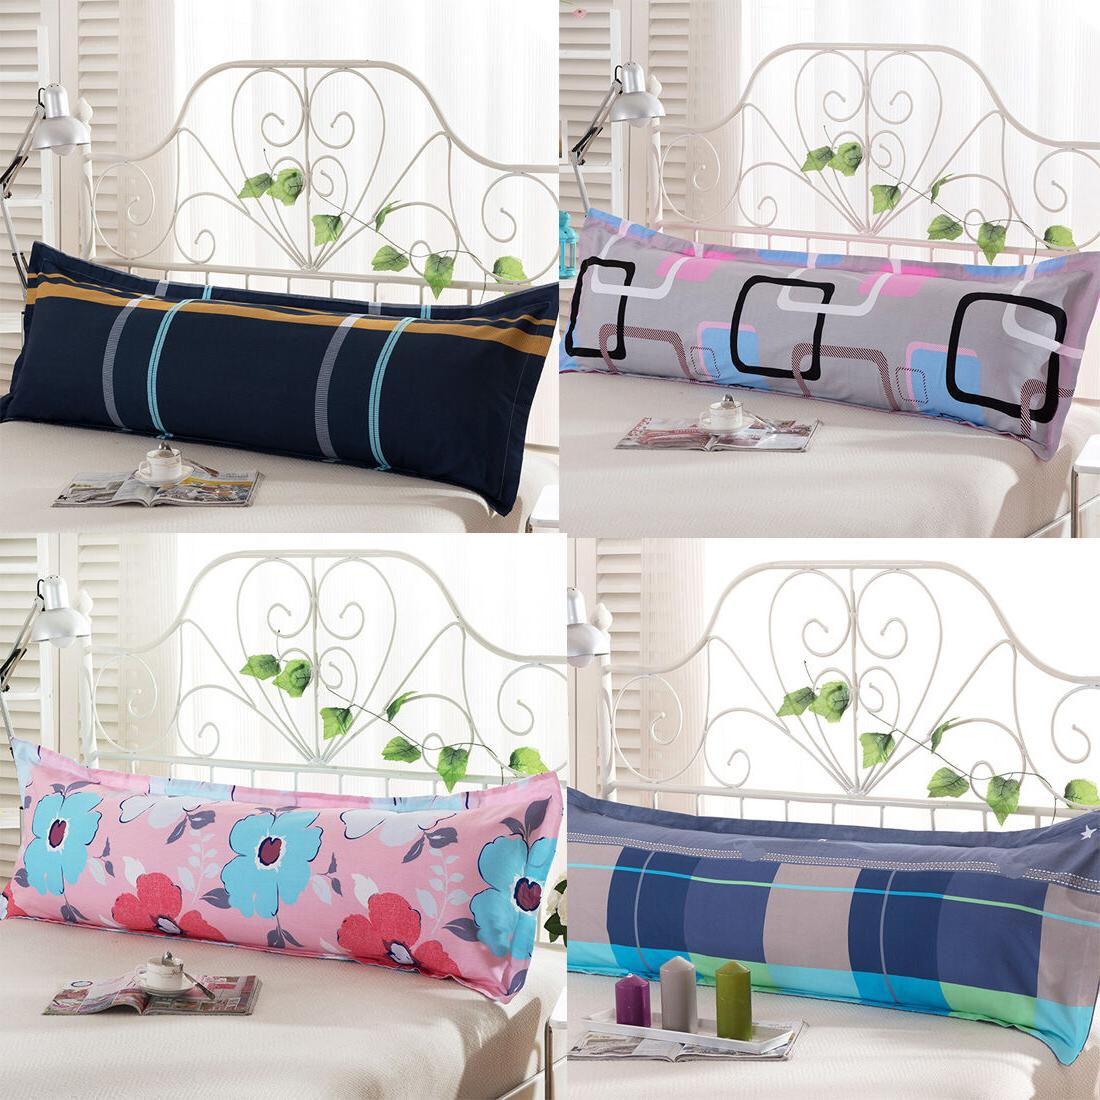 1x fashion bed long body pillow cover